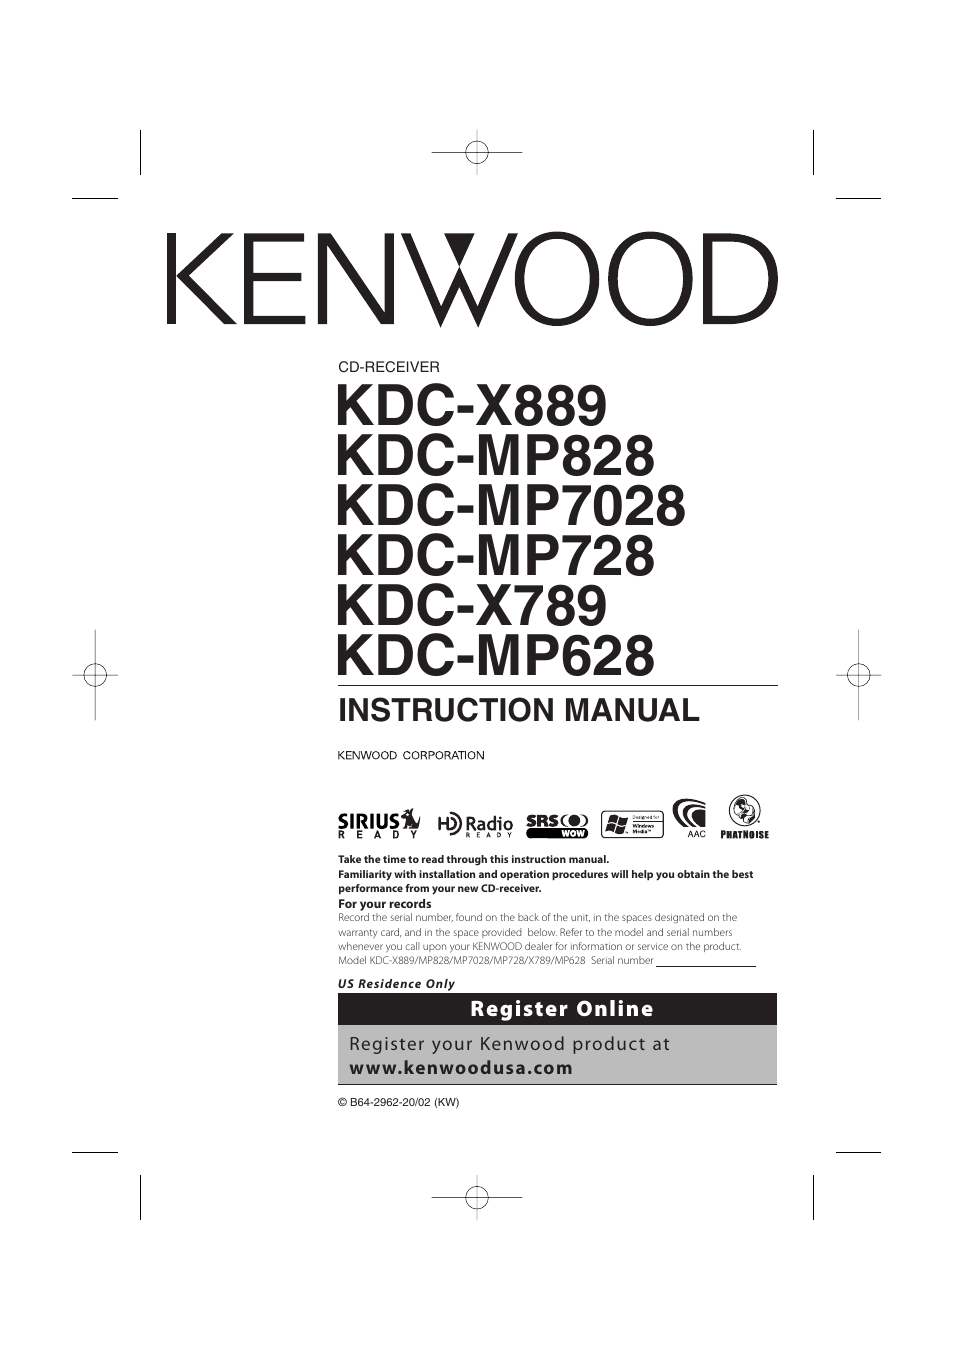 kenwood car cd player product